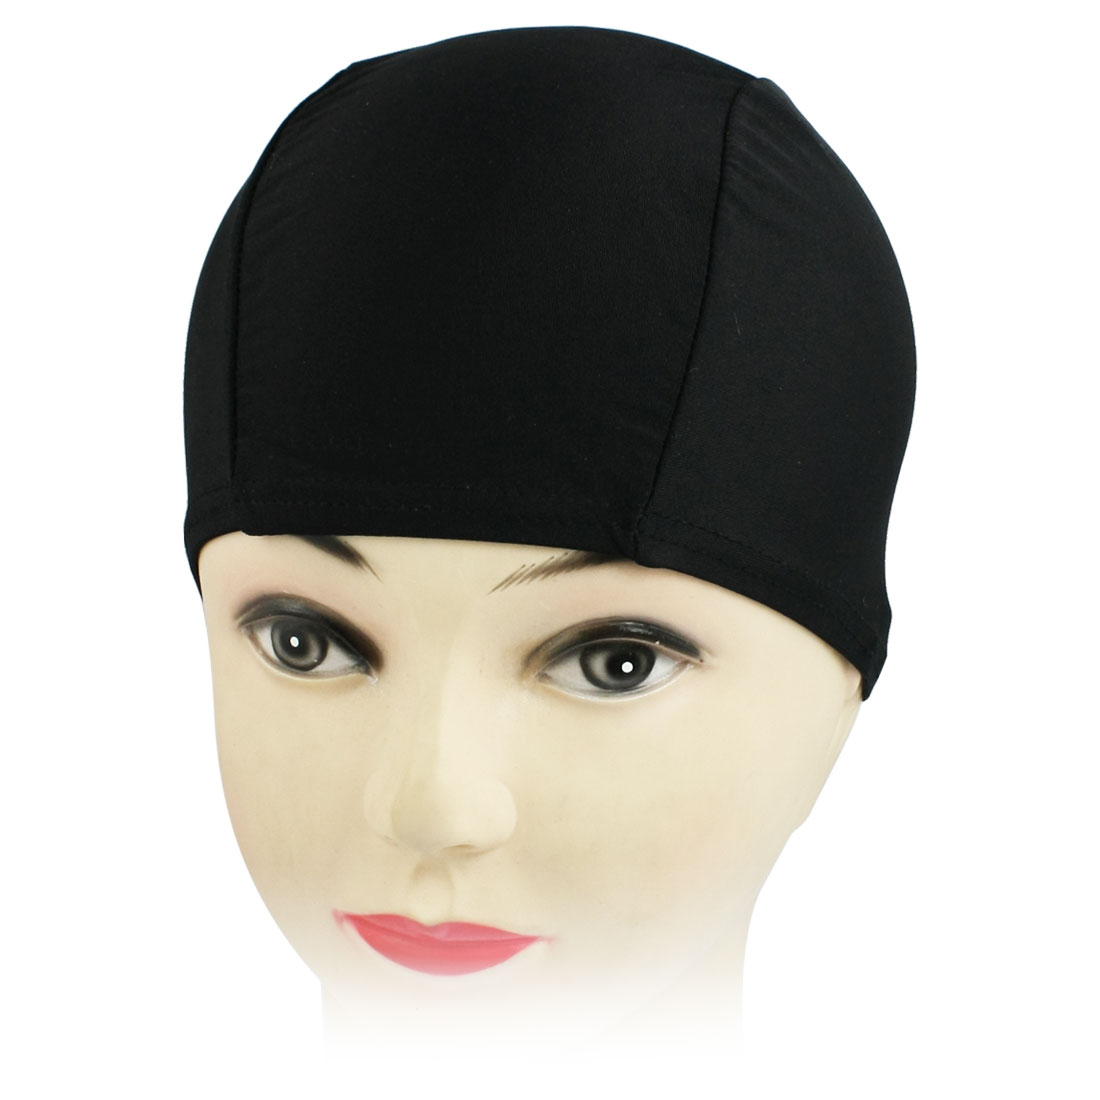 Fiber Elastic Swim Waterproof Hair Cap Swimming Hat Ear Wrap Black for Women Men